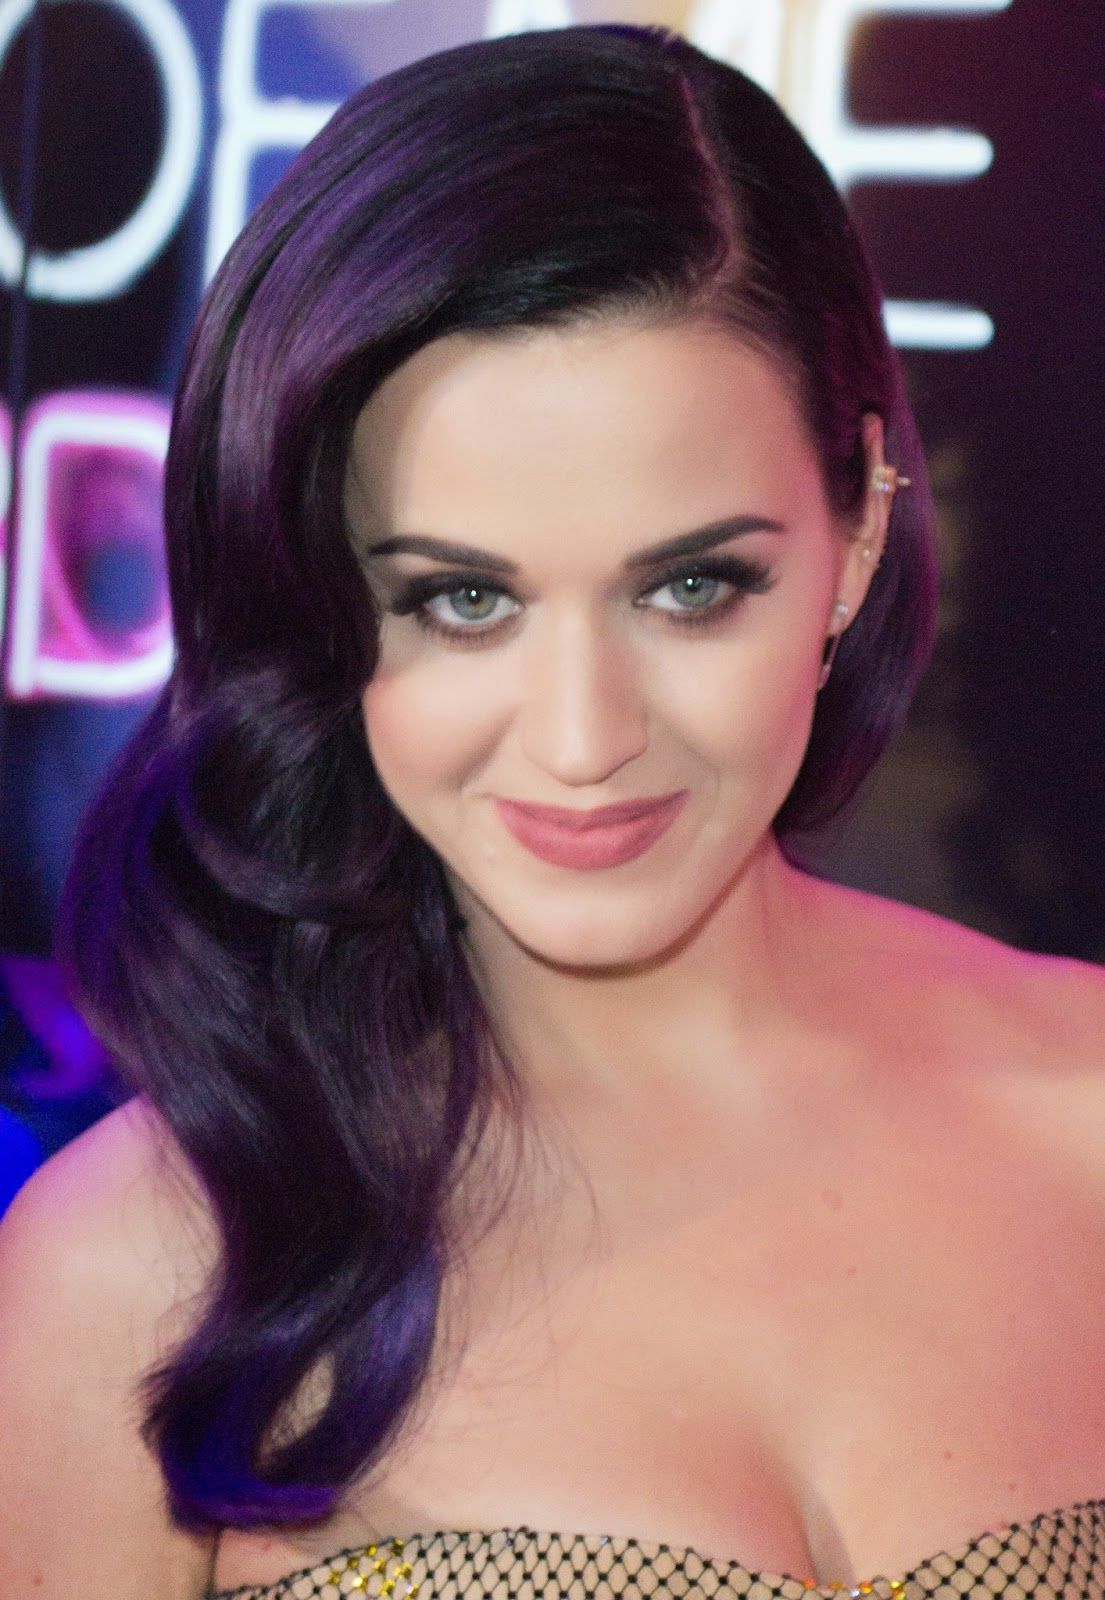 Wallpaper Hd For Desktop Background Katy Perry Hd Wallpapers